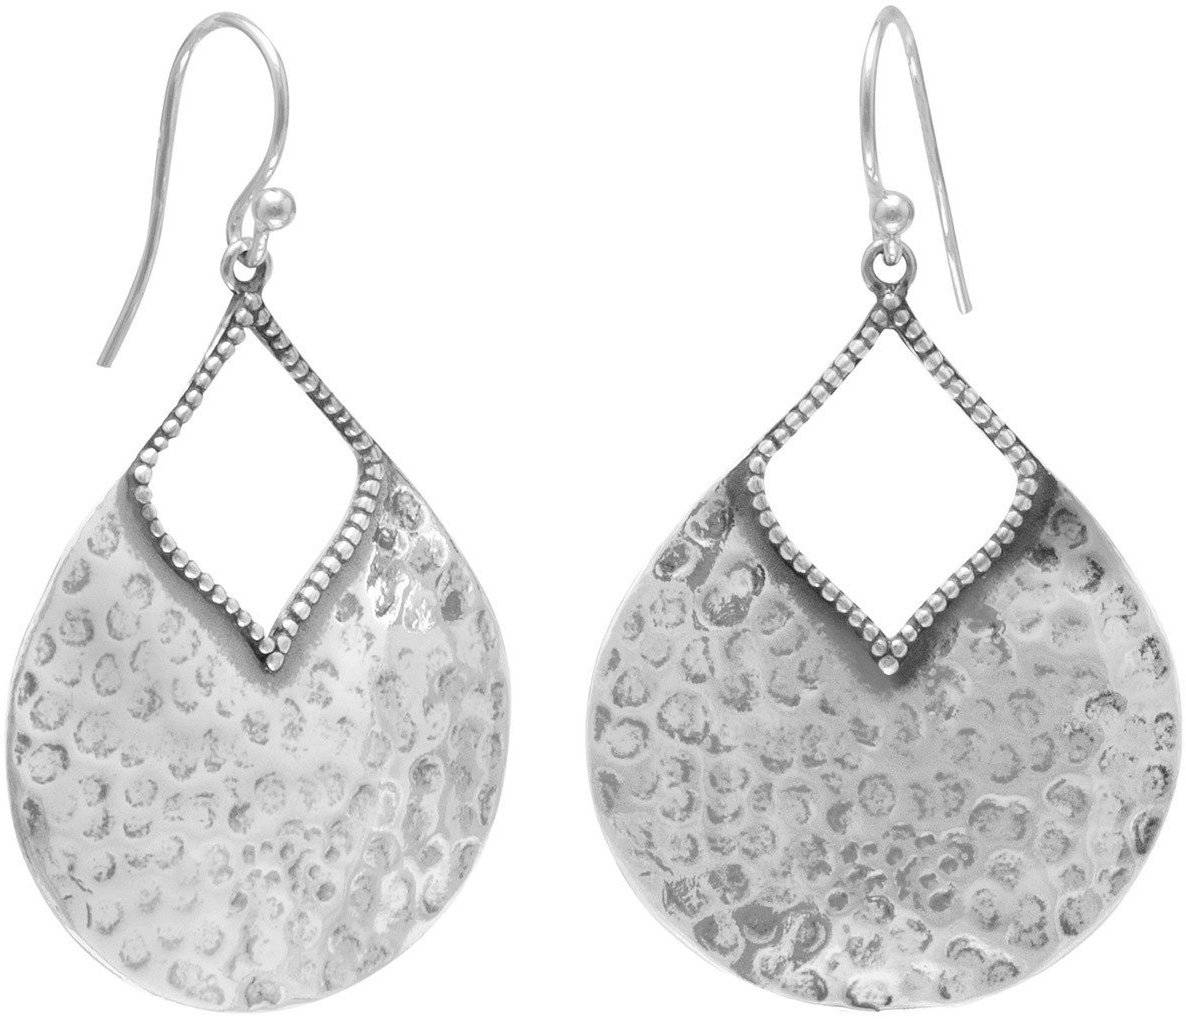 Oxidized Hammered Pear Shape Earrings 925 Sterling Silver